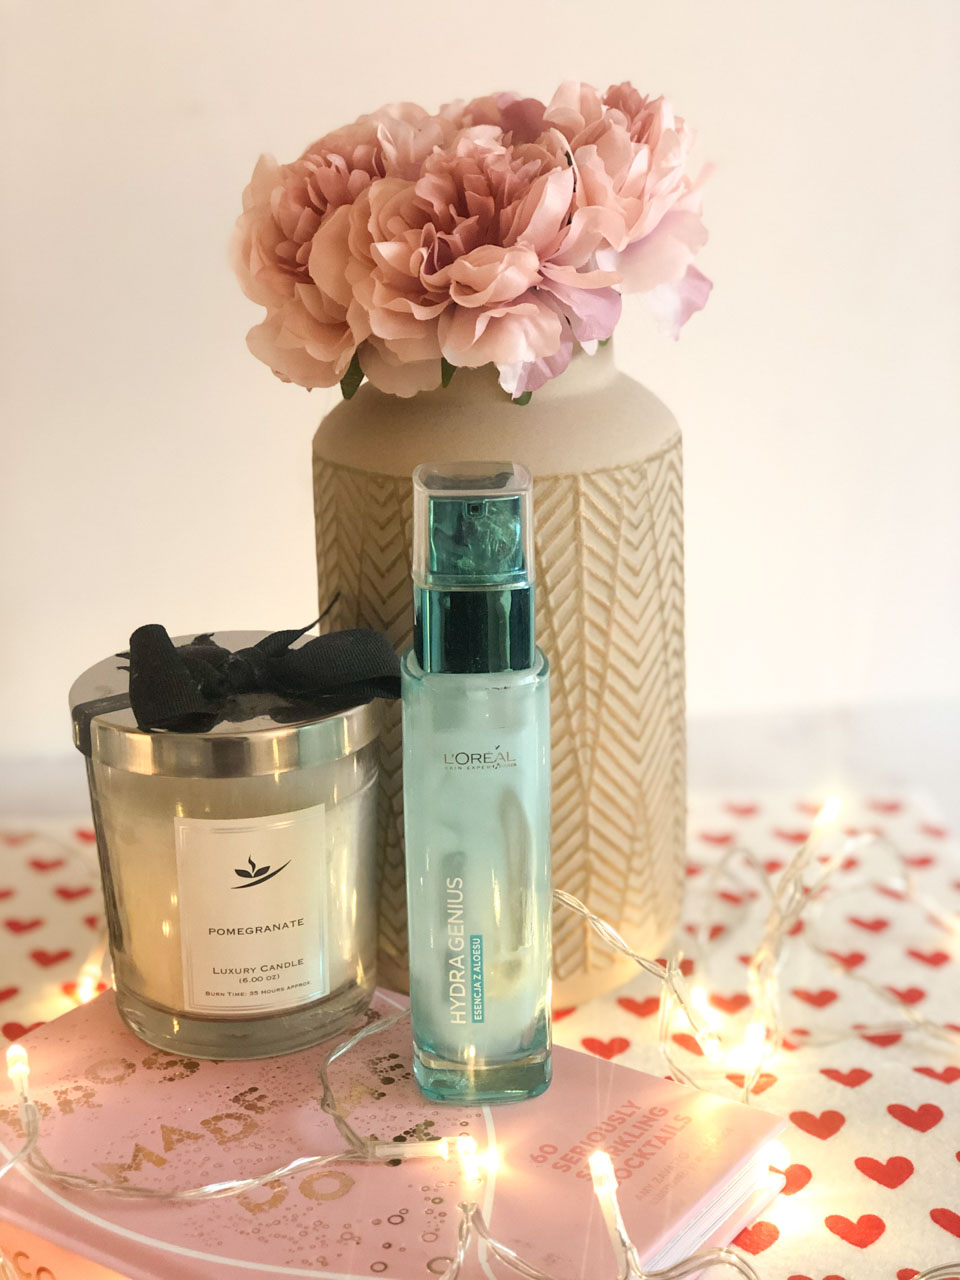 L'Oreal Hydra Genius moisturiser on a desk next to a candle and a vase with peonies